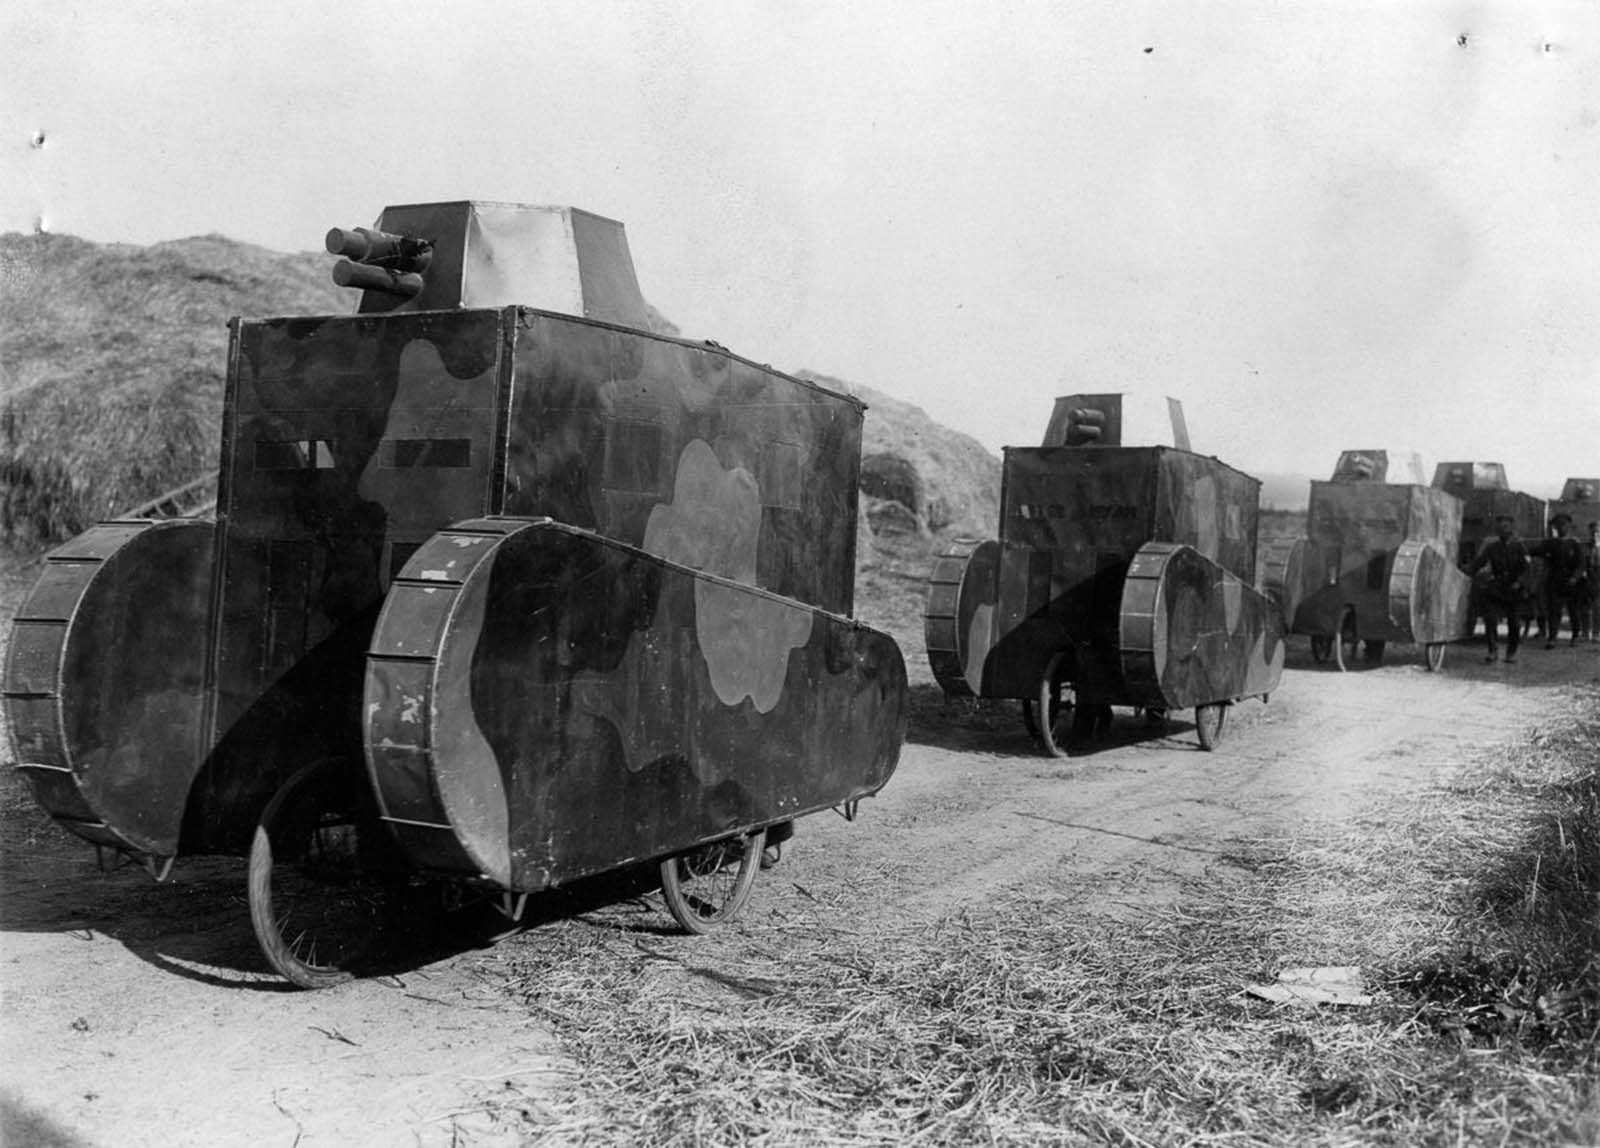 Cardboard German dummy tanks on maneuvers. 1928.